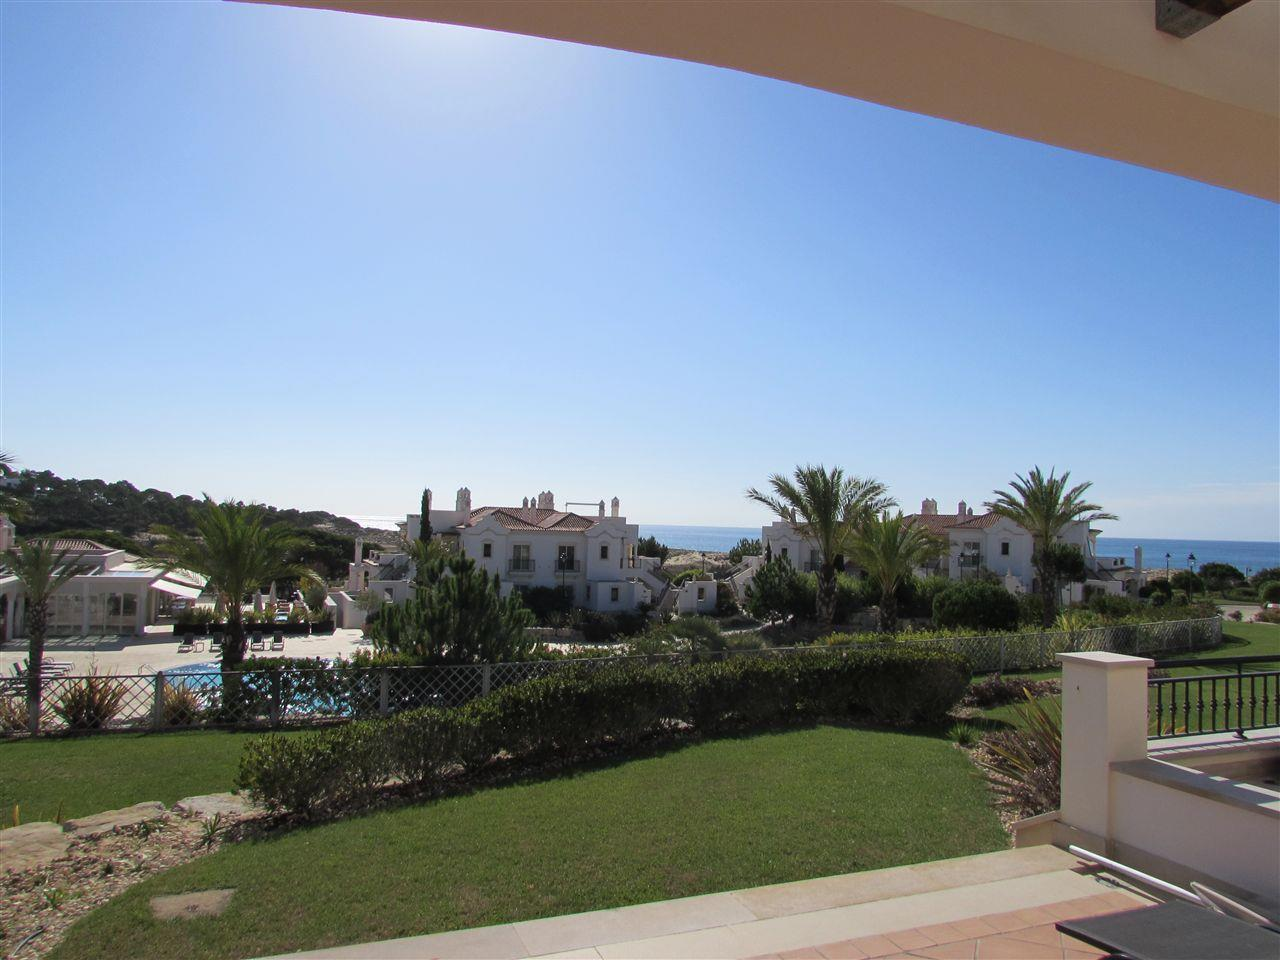 Apartamento para Venda às Flat, 3 bedrooms, for Sale Loule, Algarve Portugal